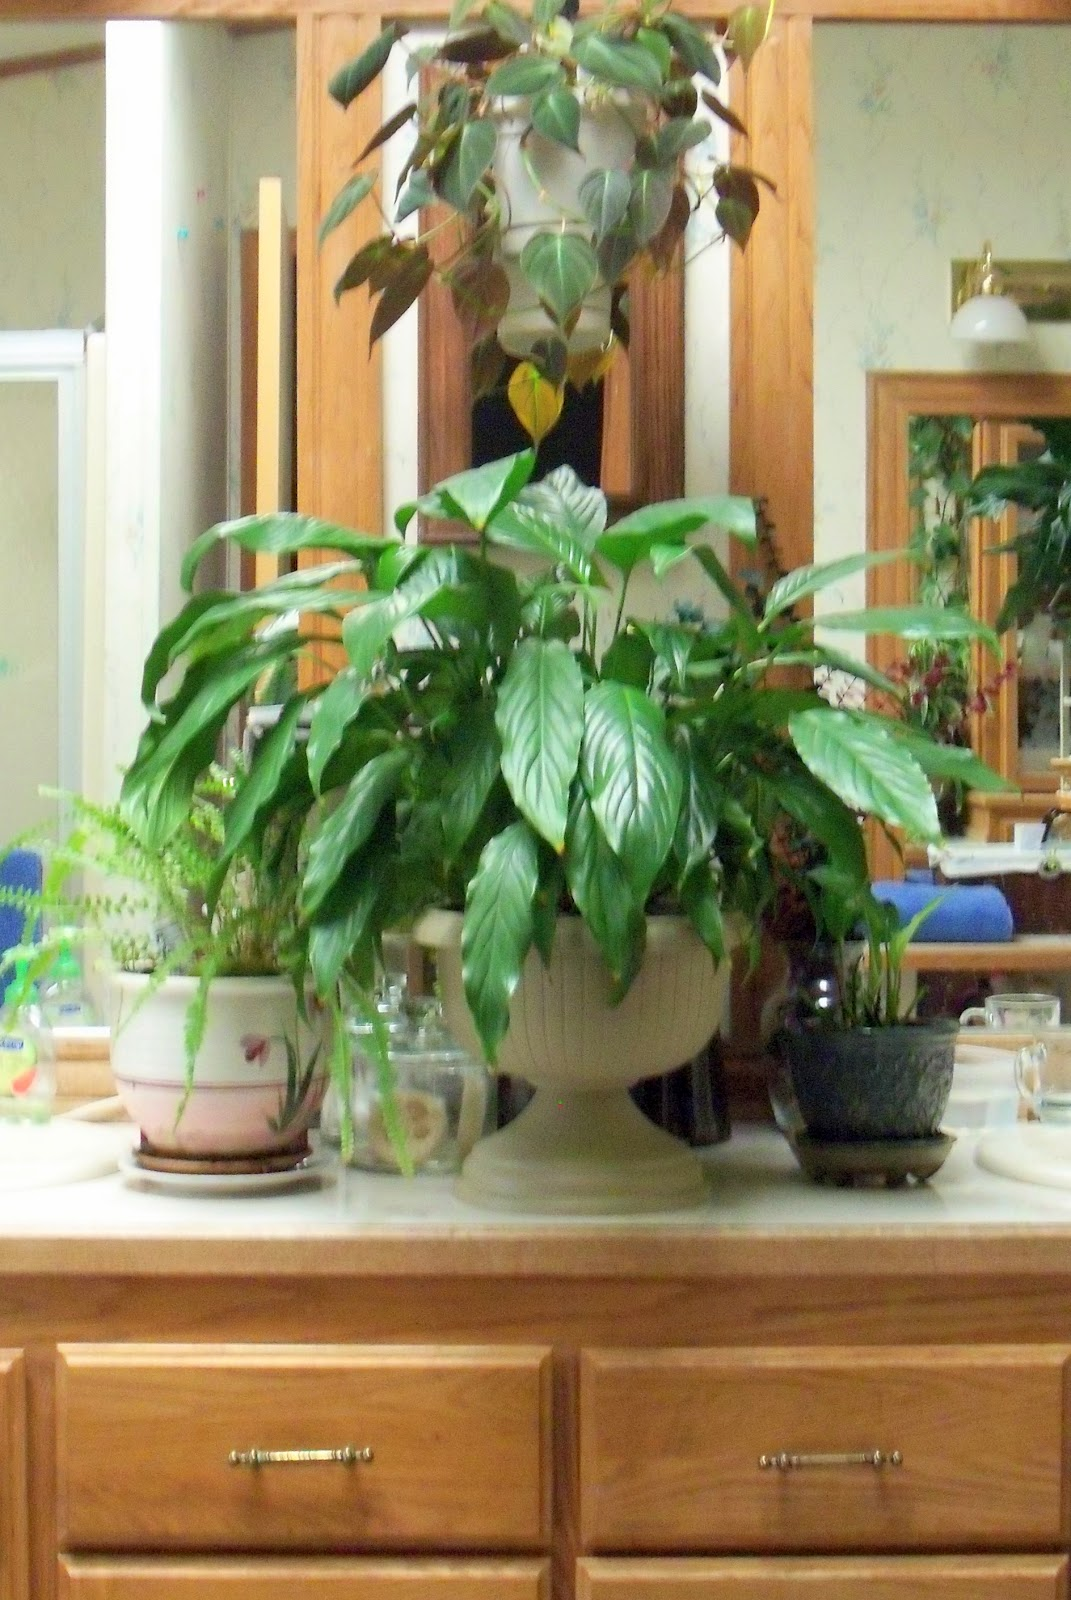 Make the best of things march 2012 for Peace lily in bathroom